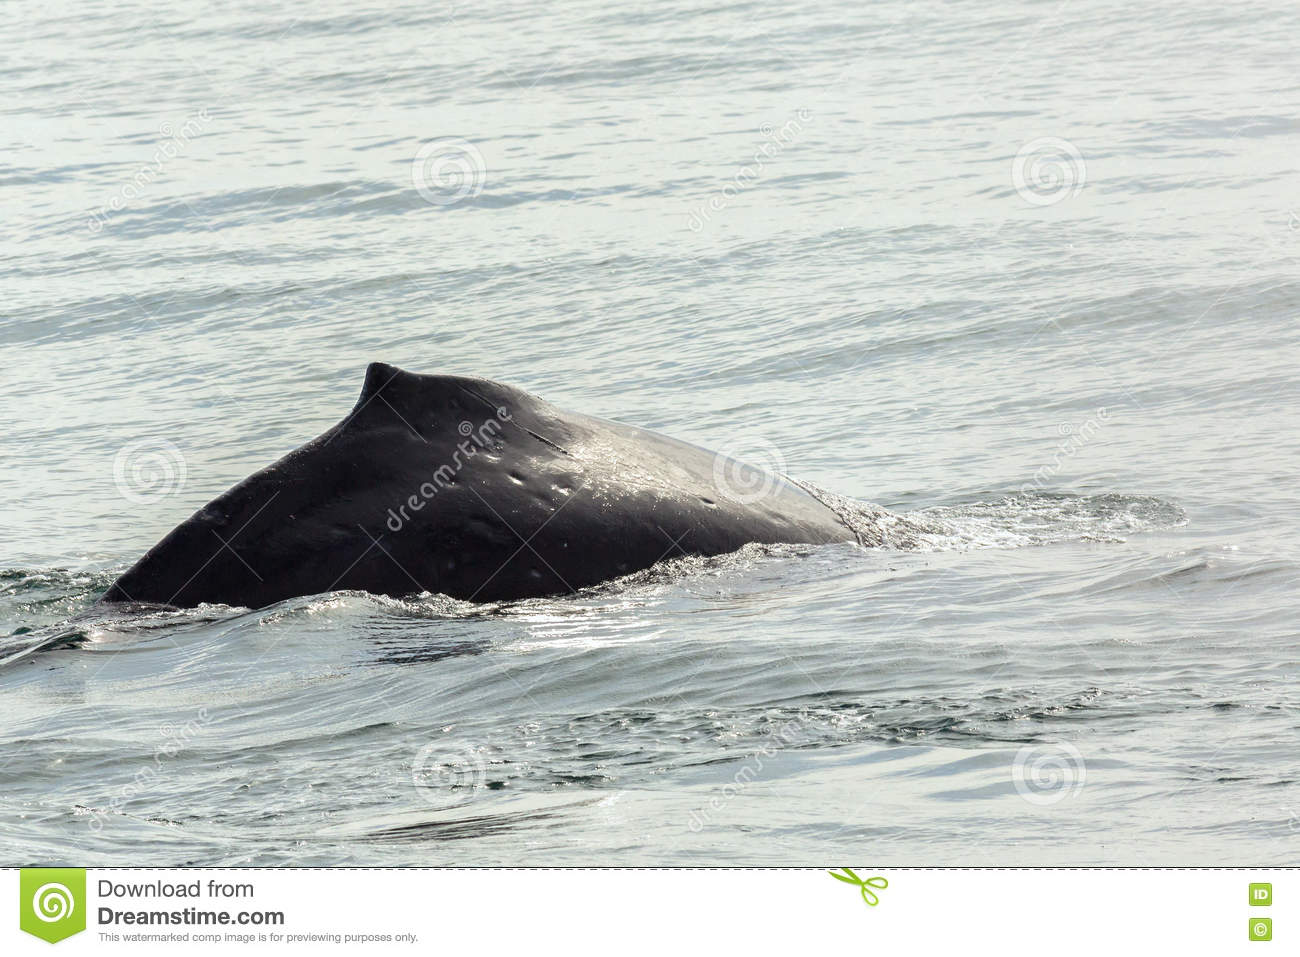 Fin on the back of humpback whale in Pacific Ocean. Water area near Kamchatka Peninsula.